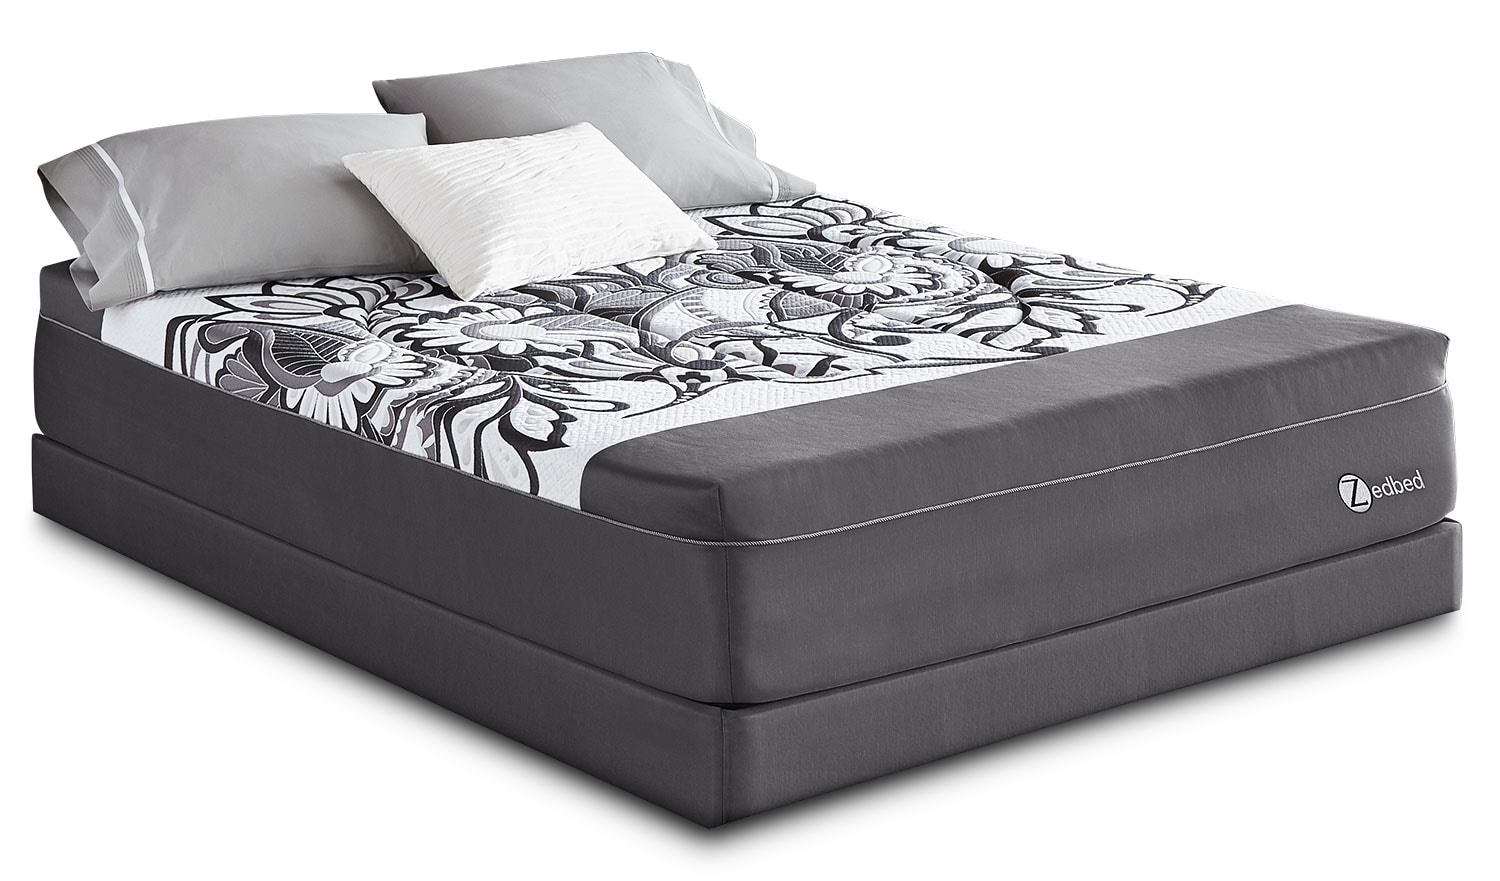 Zedbed Vertuo Deluxe Tight-Top Queen Mattress Set